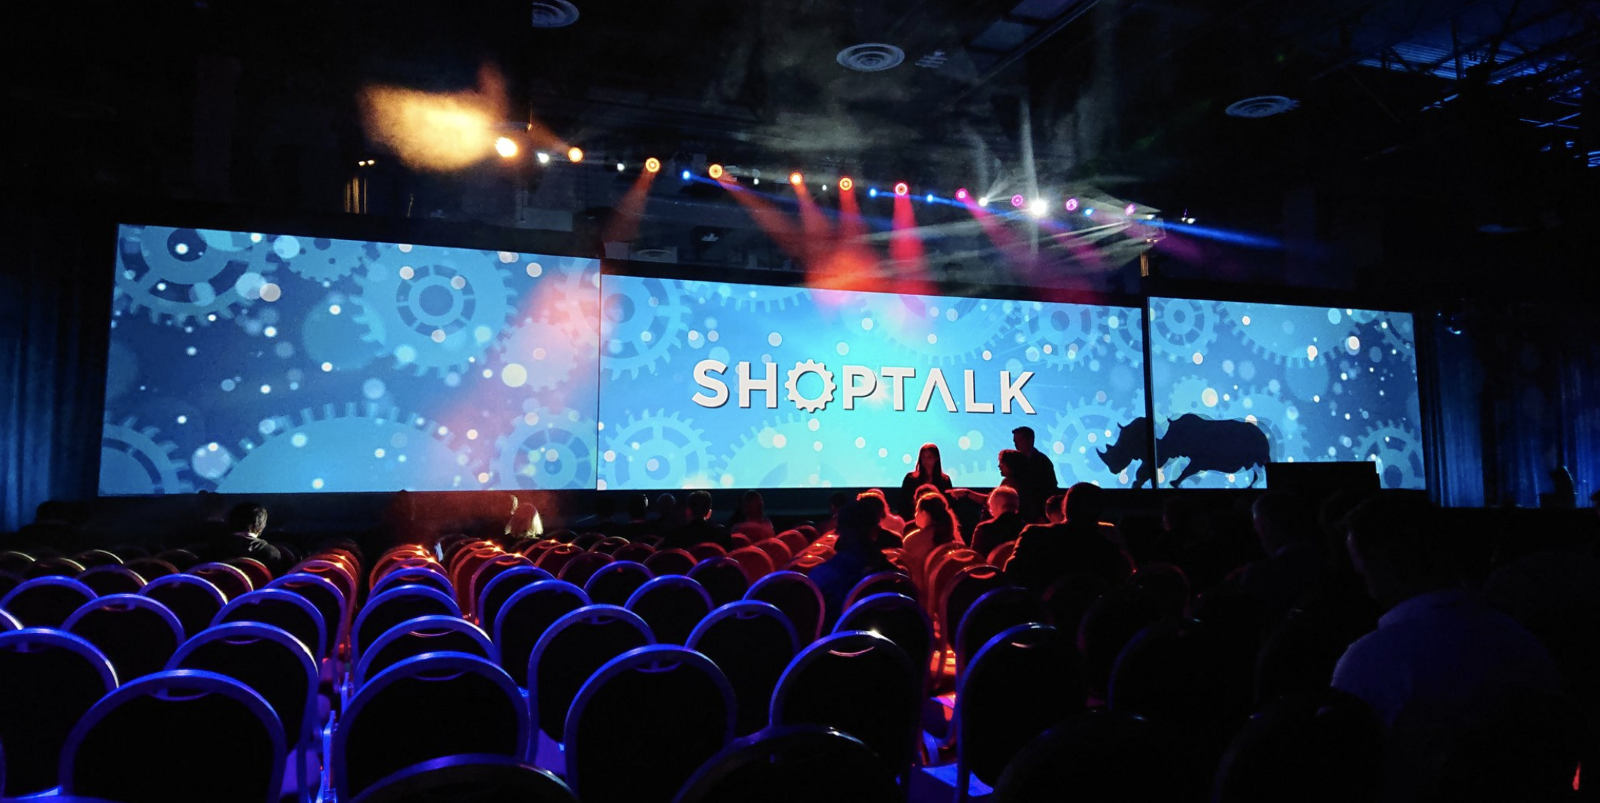 /the-future-of-retail-lessons-learned-from-shoptalk-2019-c1554a0ab22c feature image